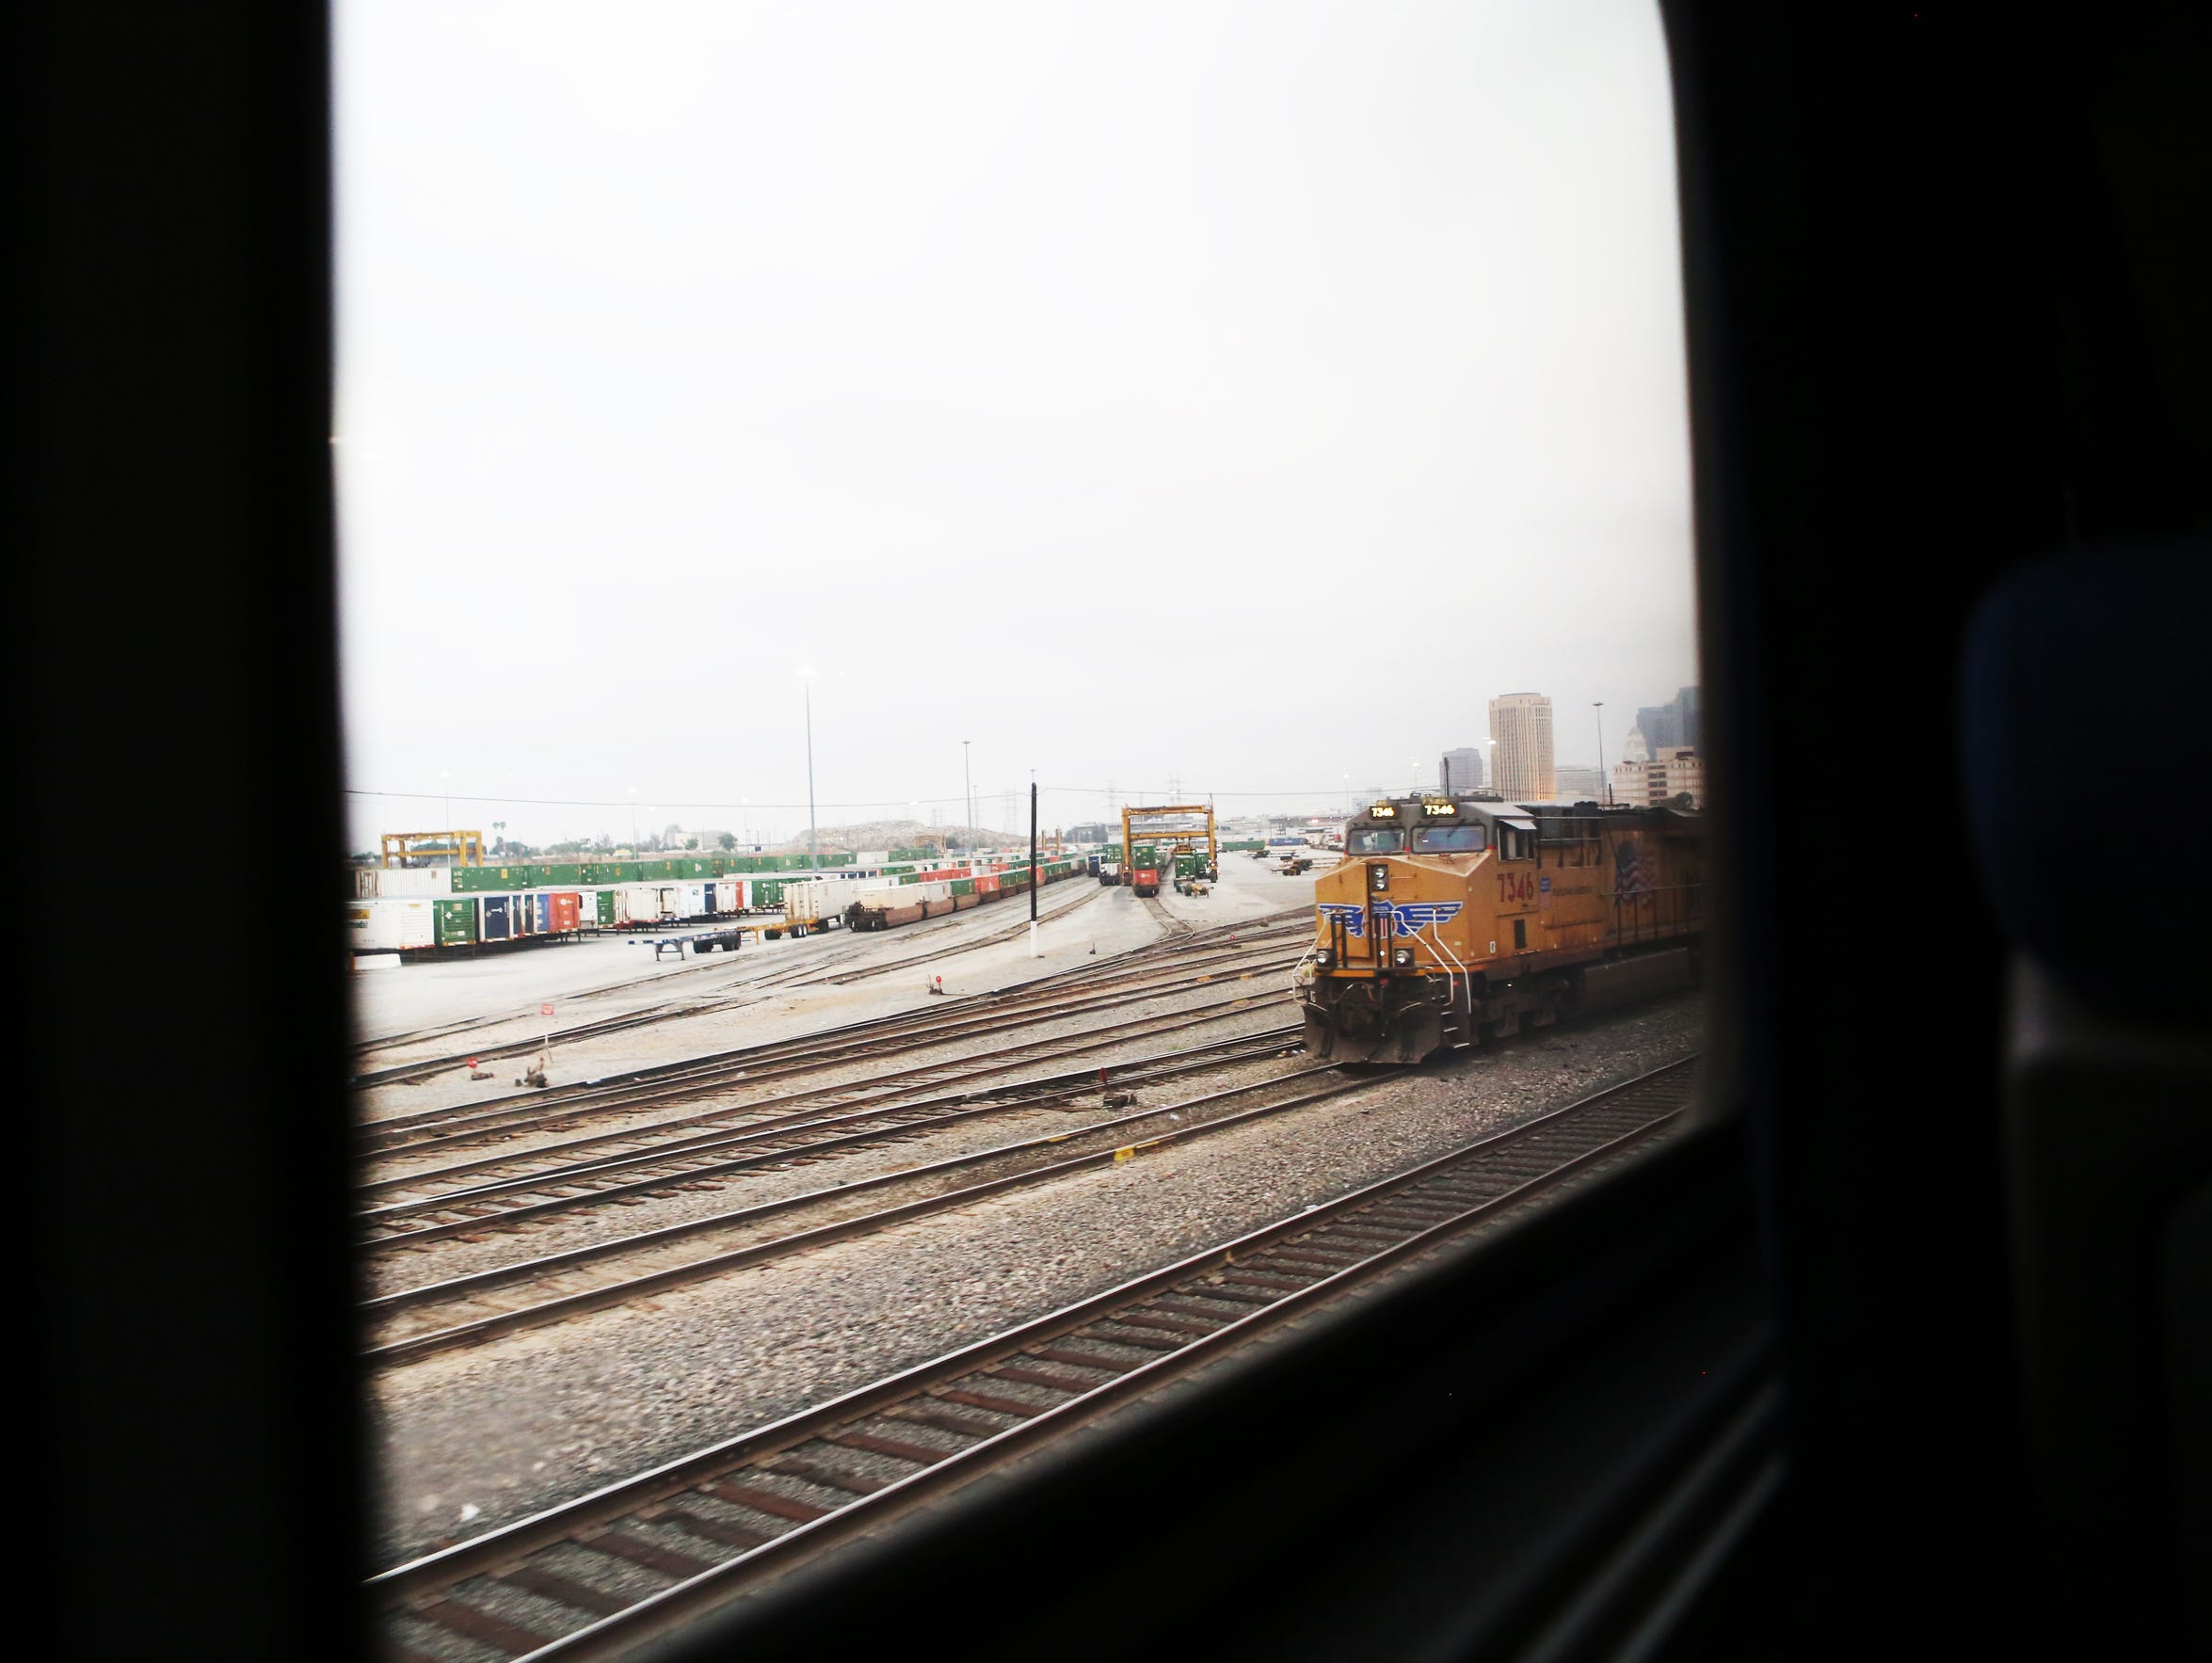 A Union Pacific engine car can be seen on the tracks